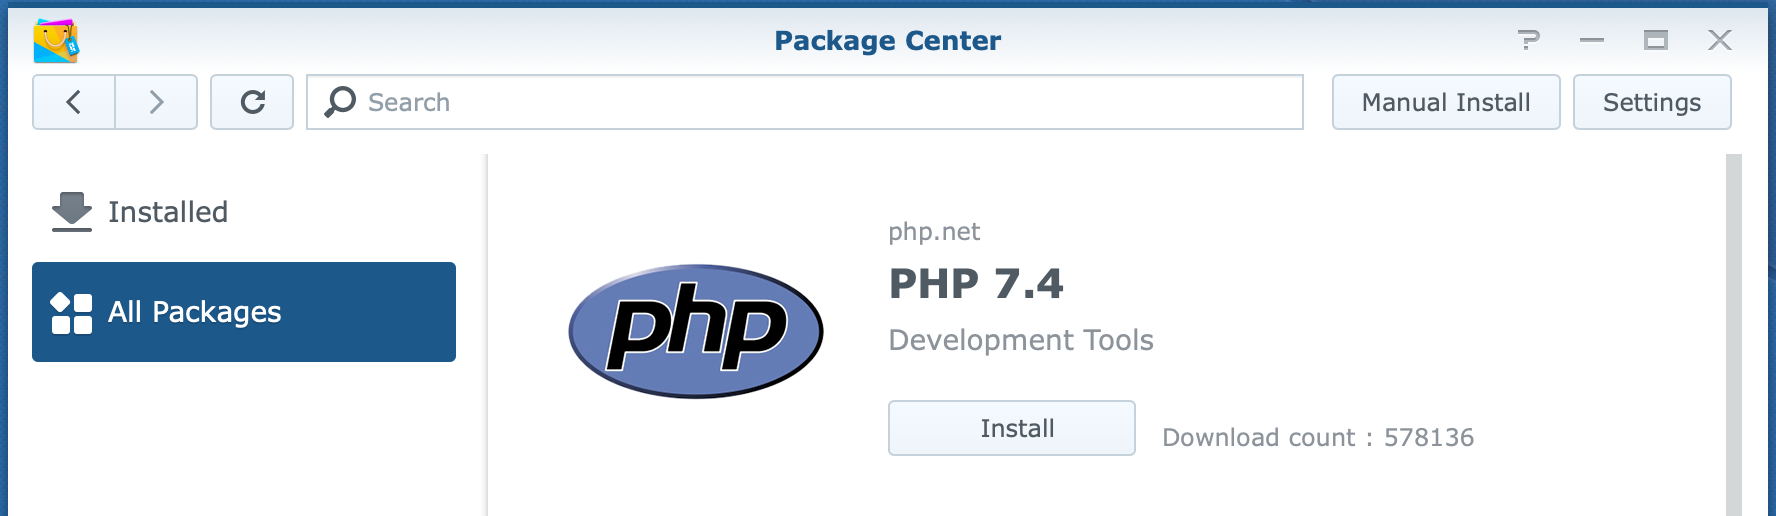 synology, package center, php 7.4, dsm6